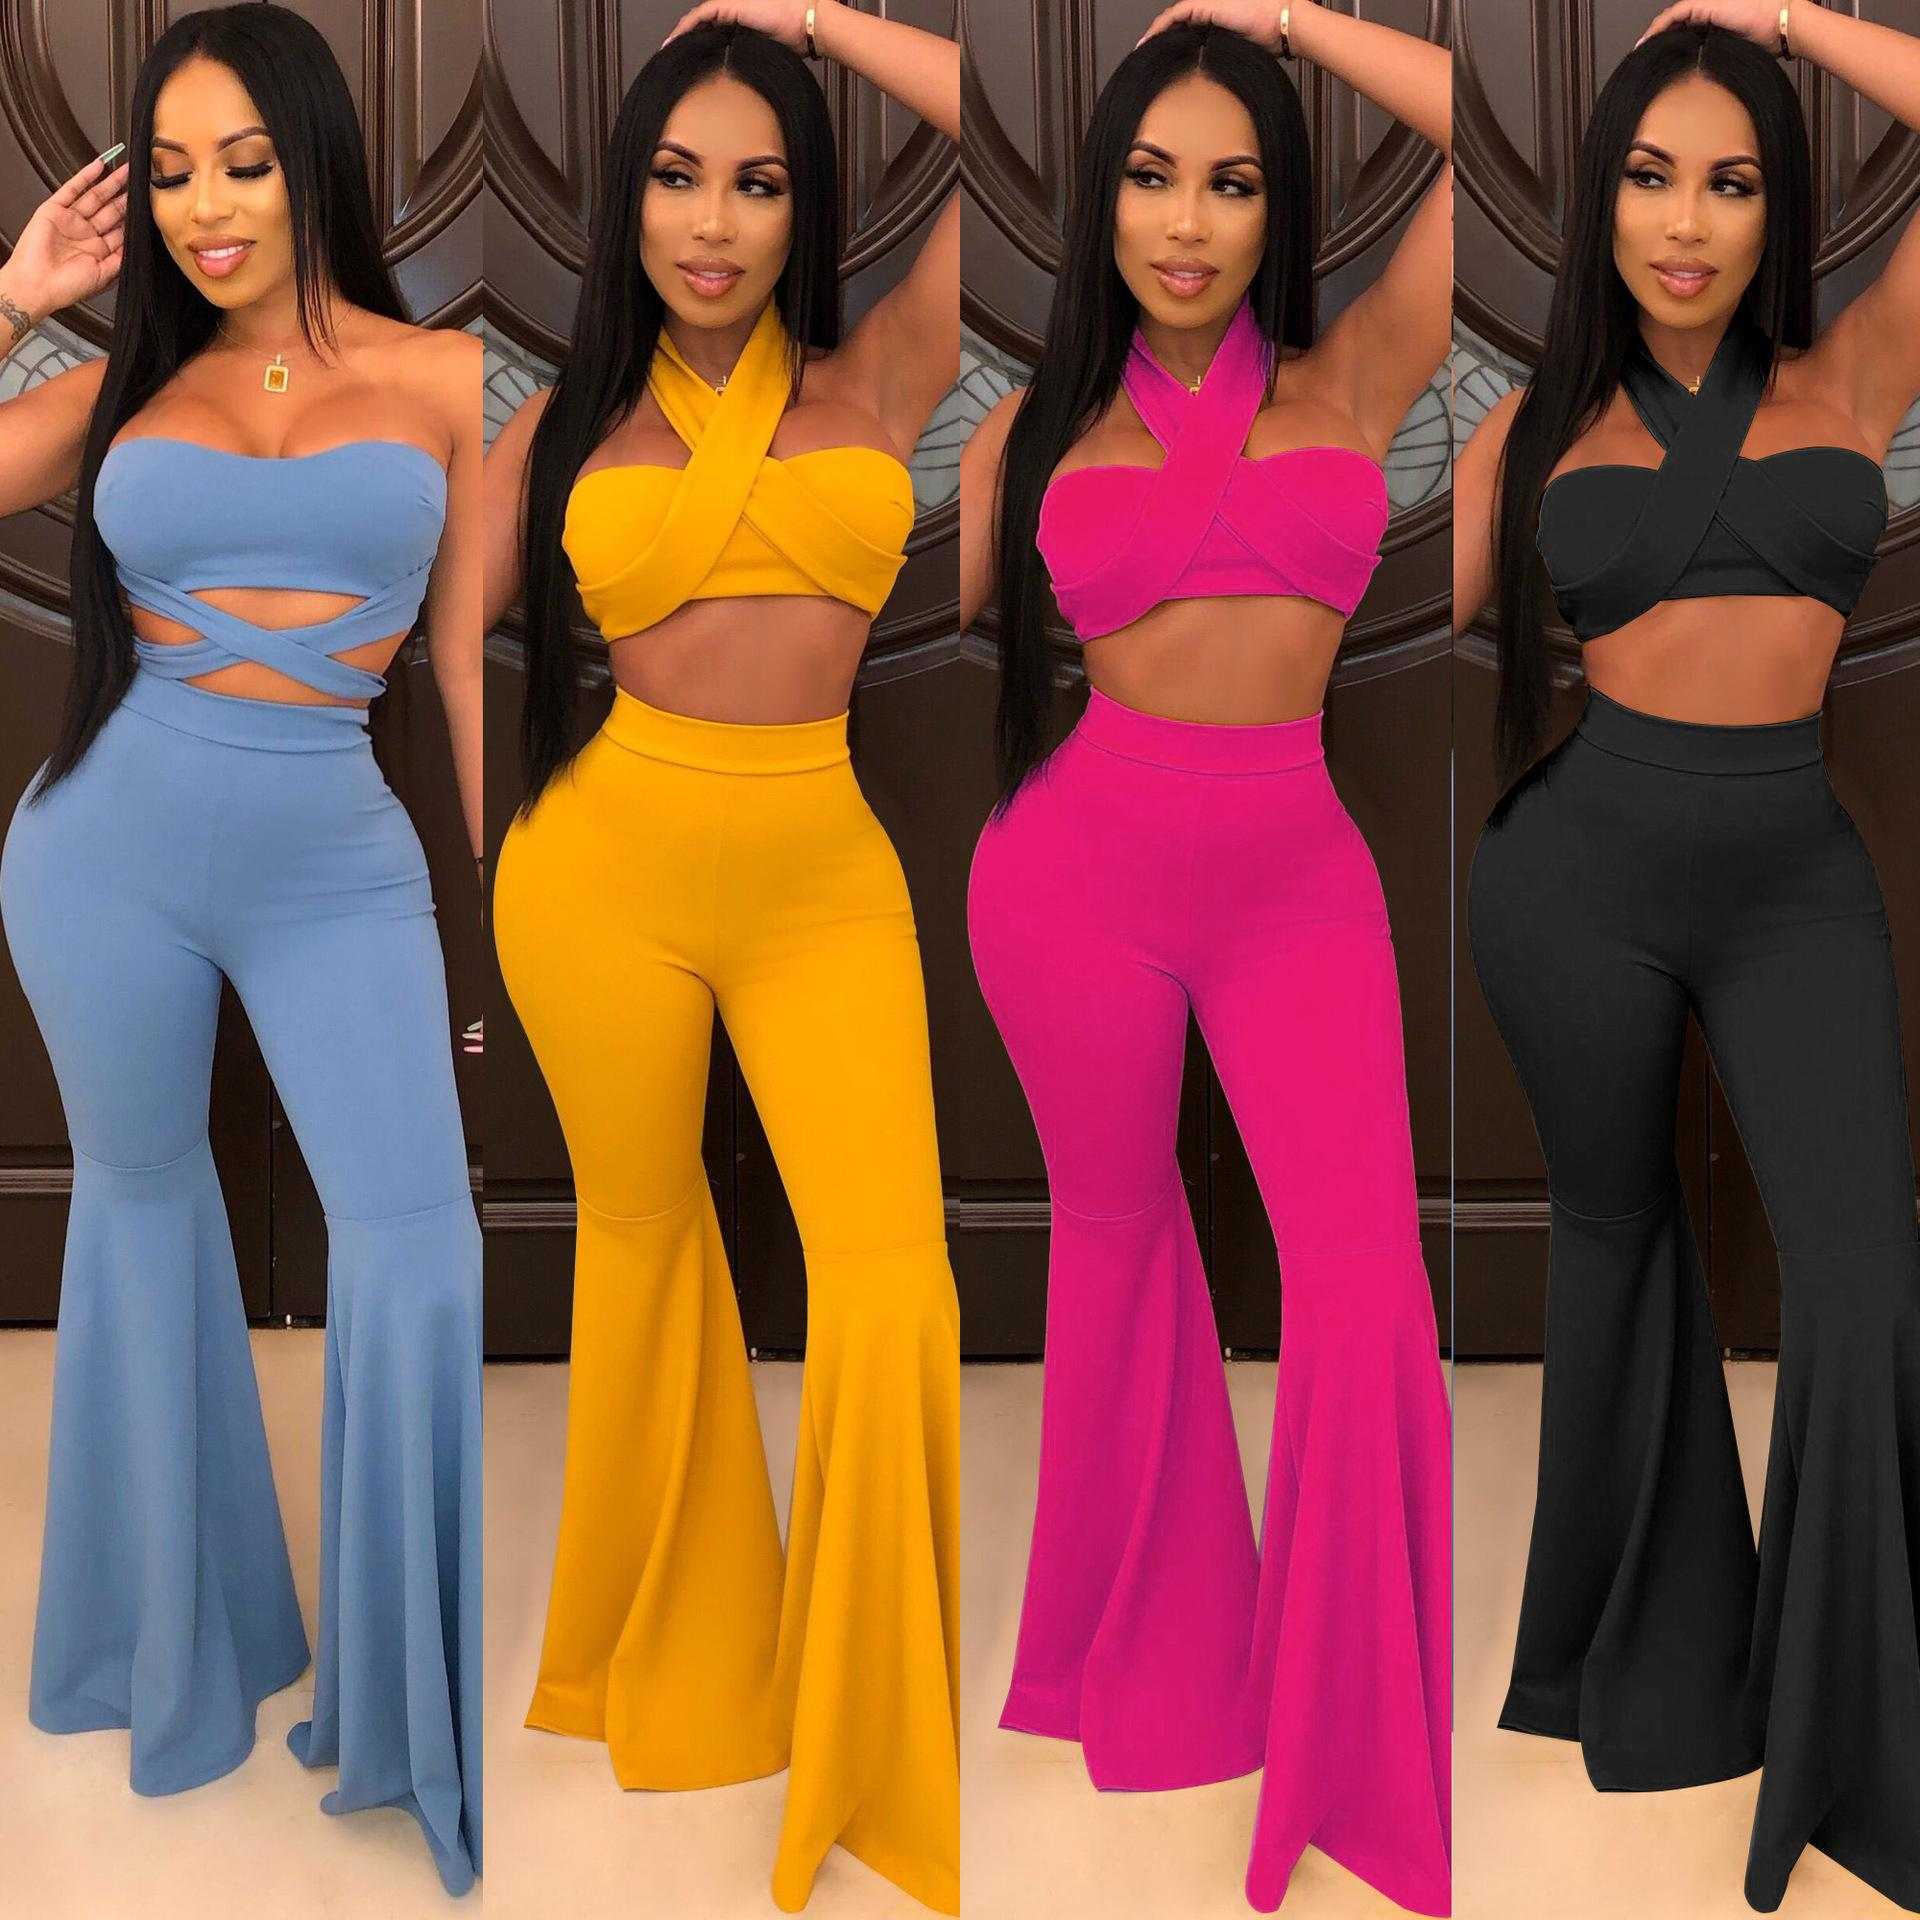 Womens Solid Two Piece Outfits Casual Short Sleeve Crop Top High Waist Pockets Flare Pants Set